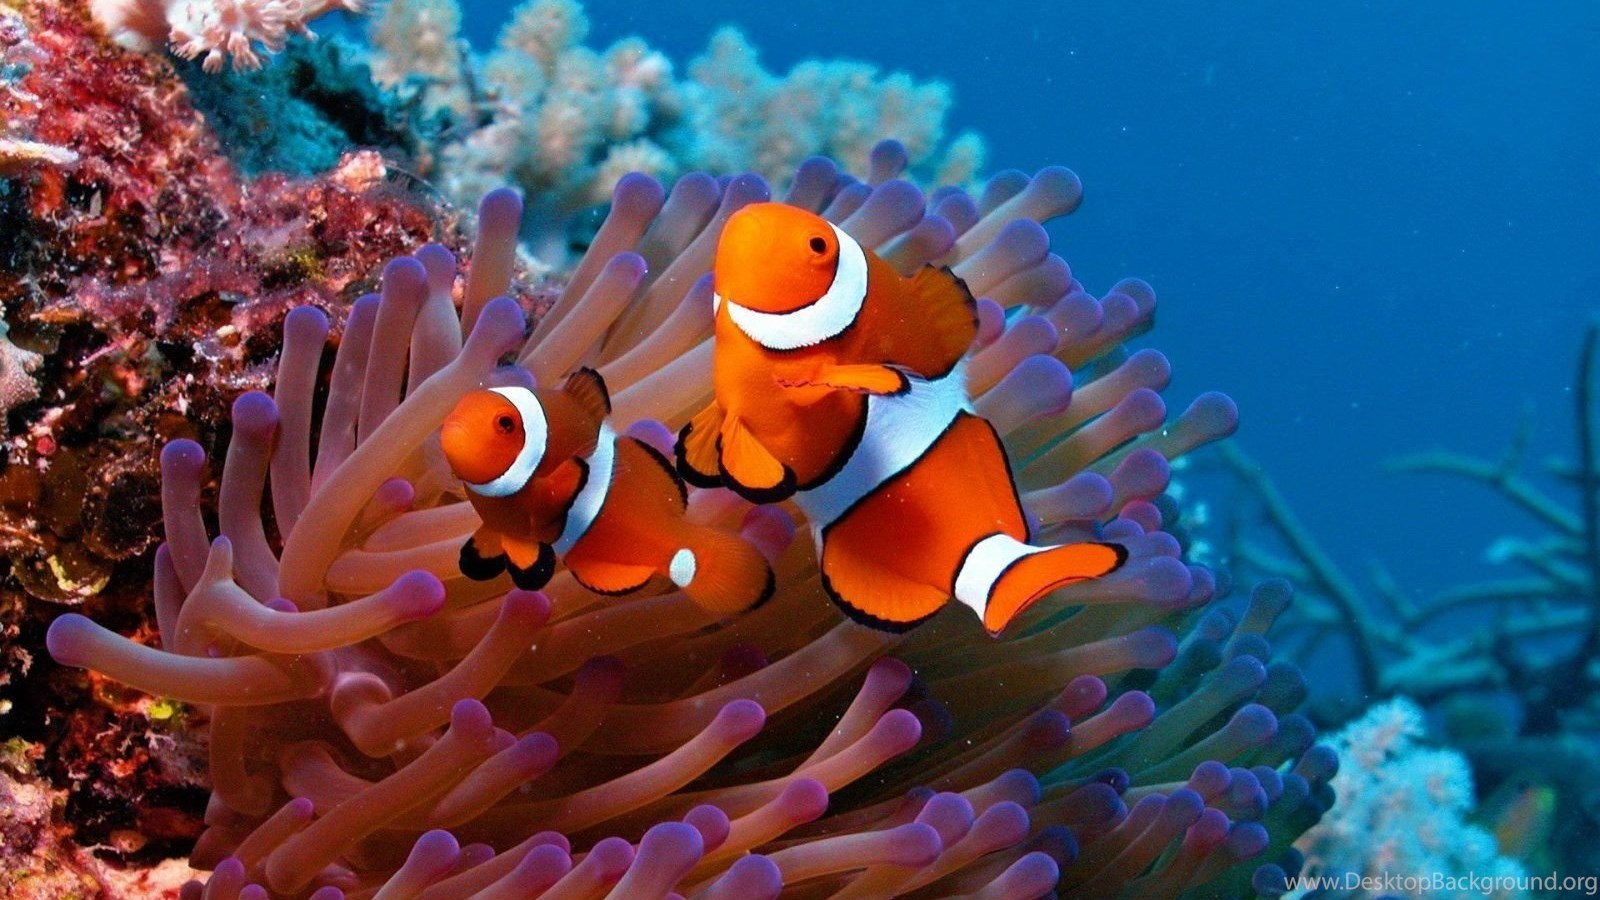 High Definition Fish Wallpapers For Free Download Desktop Background